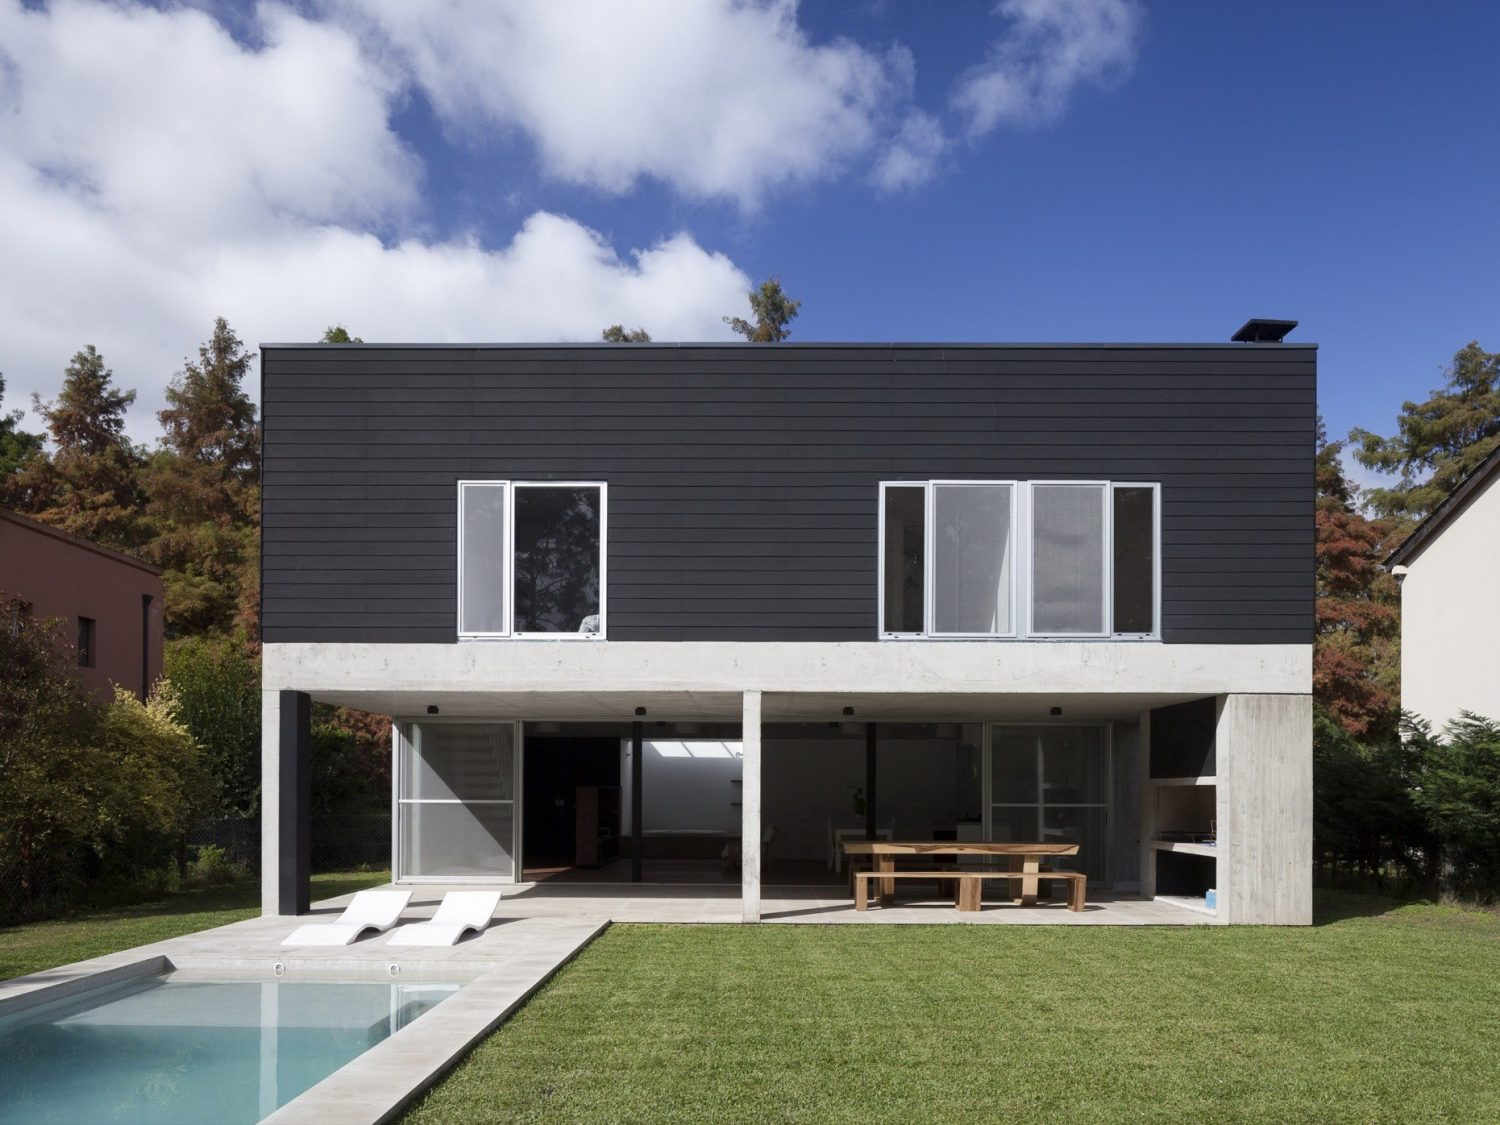 House DV by Colle-Croce